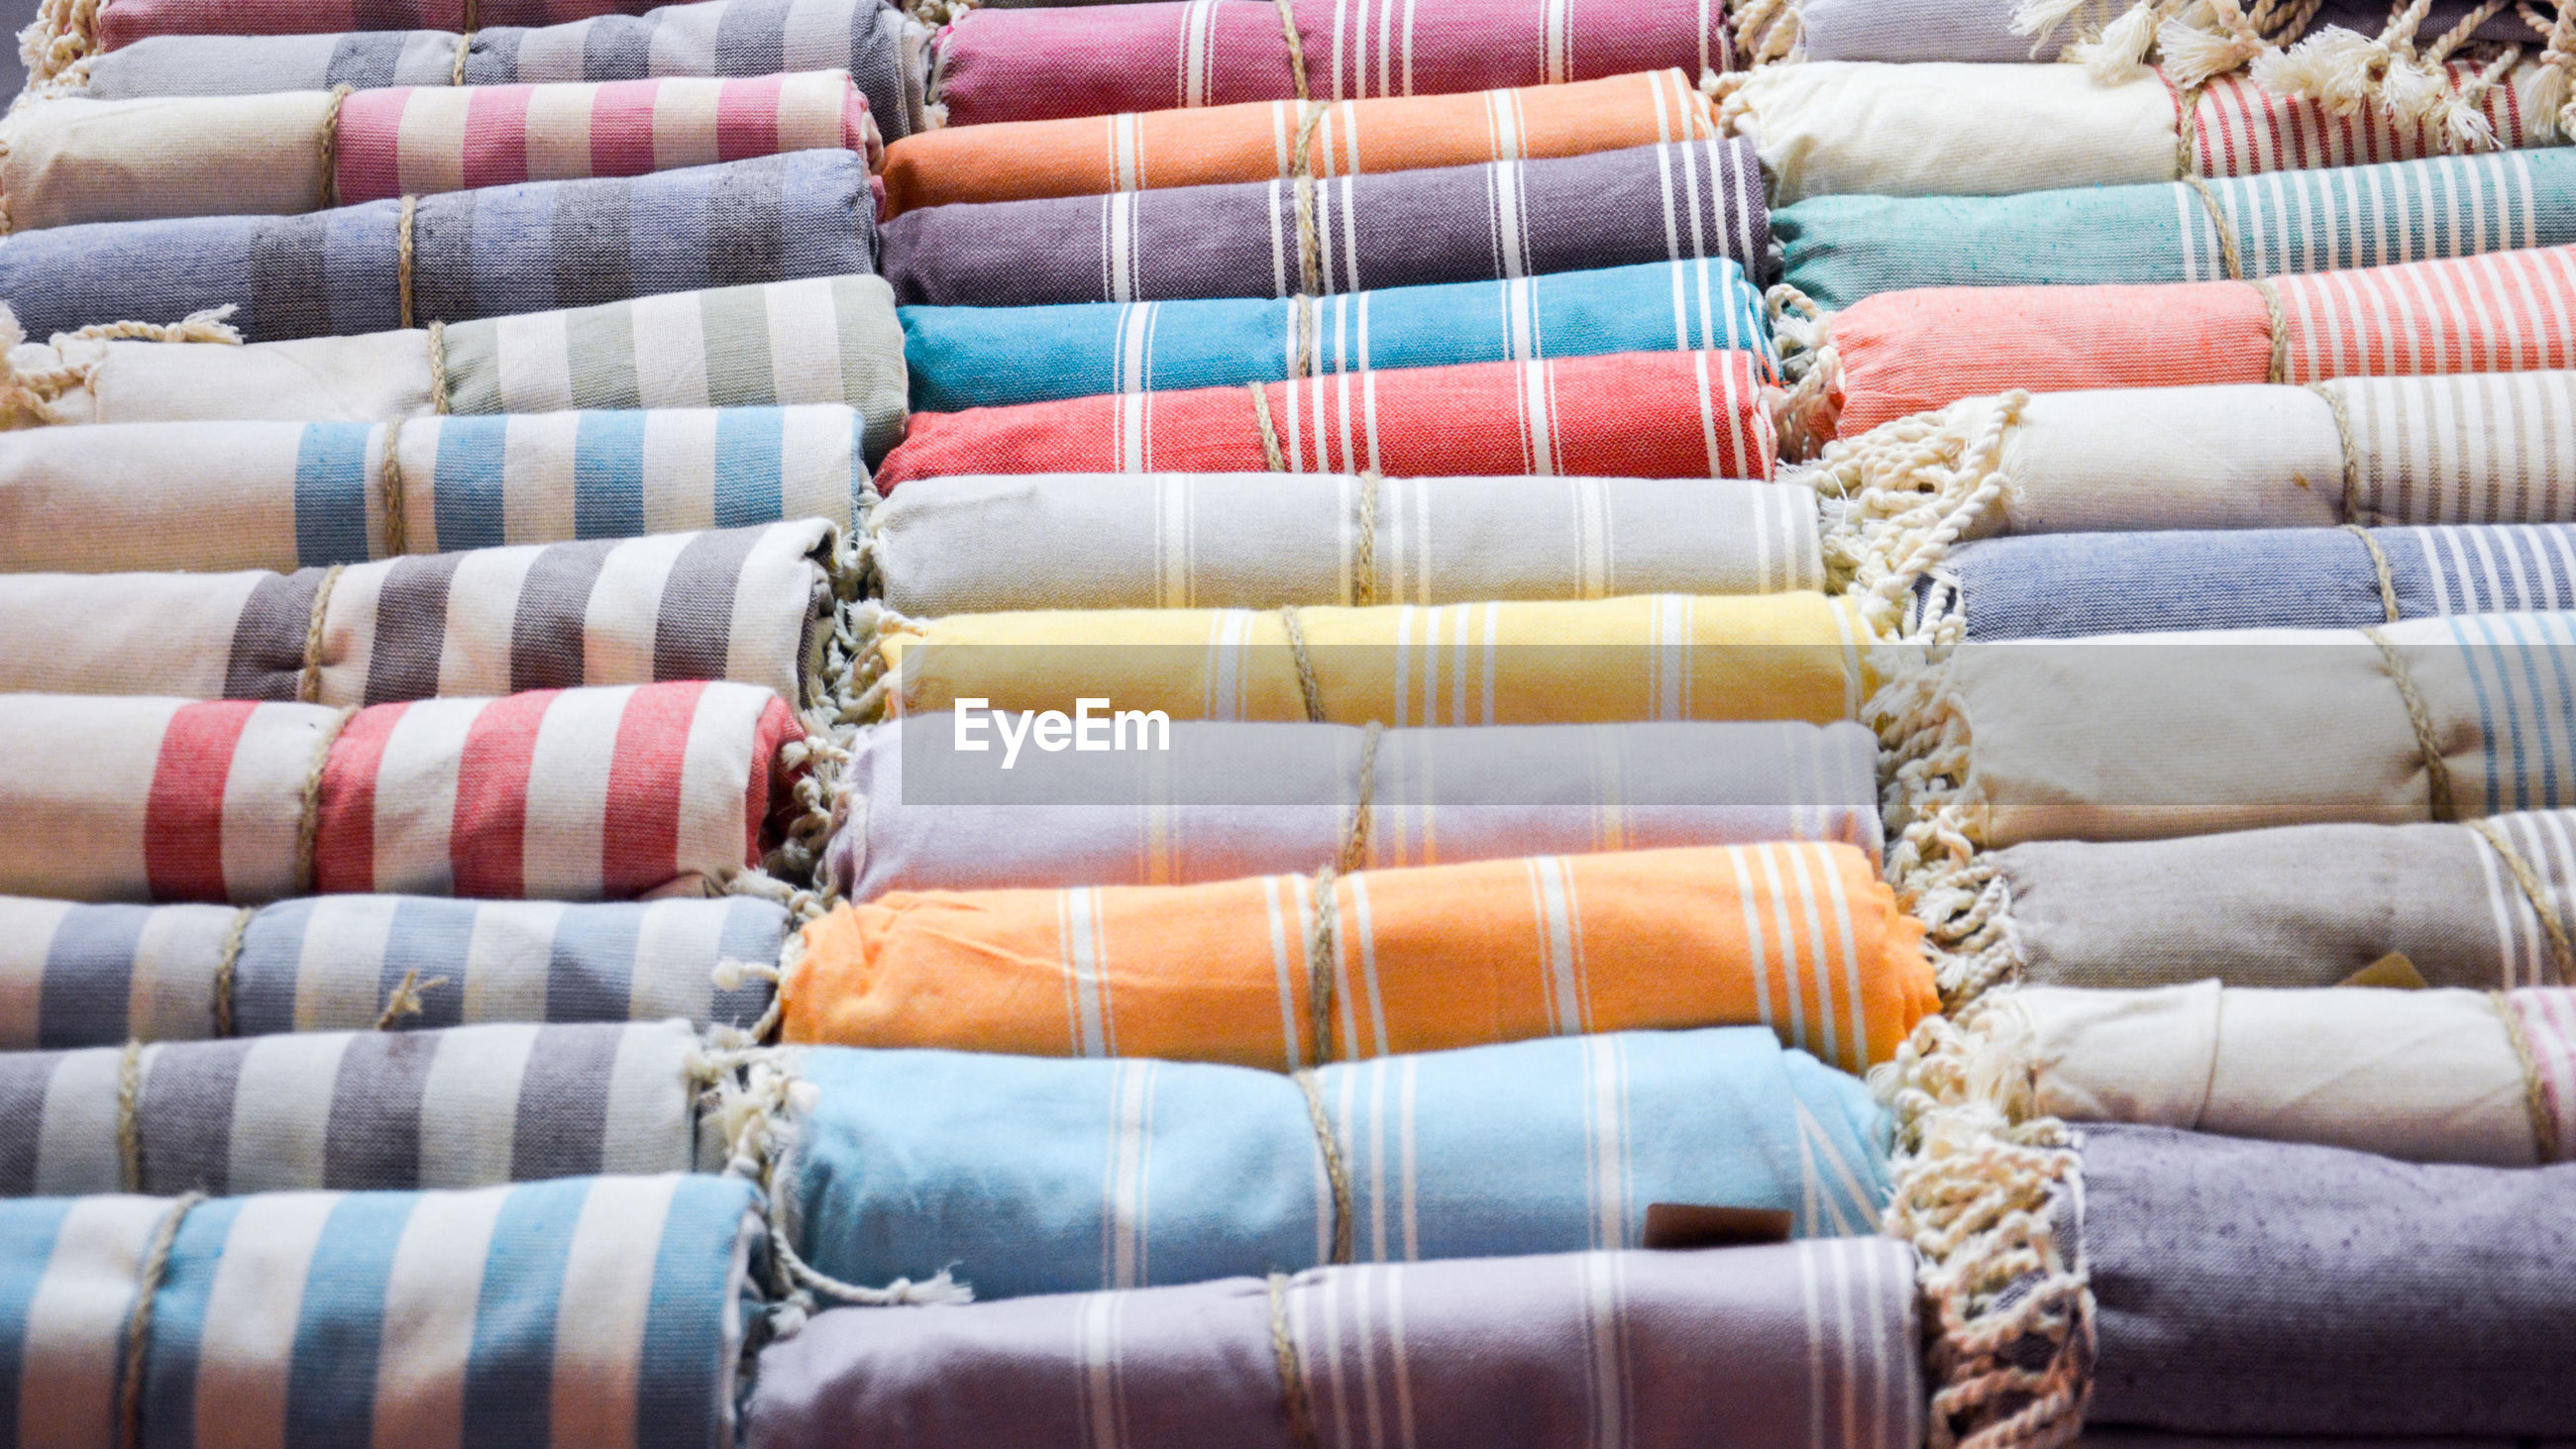 Full frame shot of rolled up fabrics at store